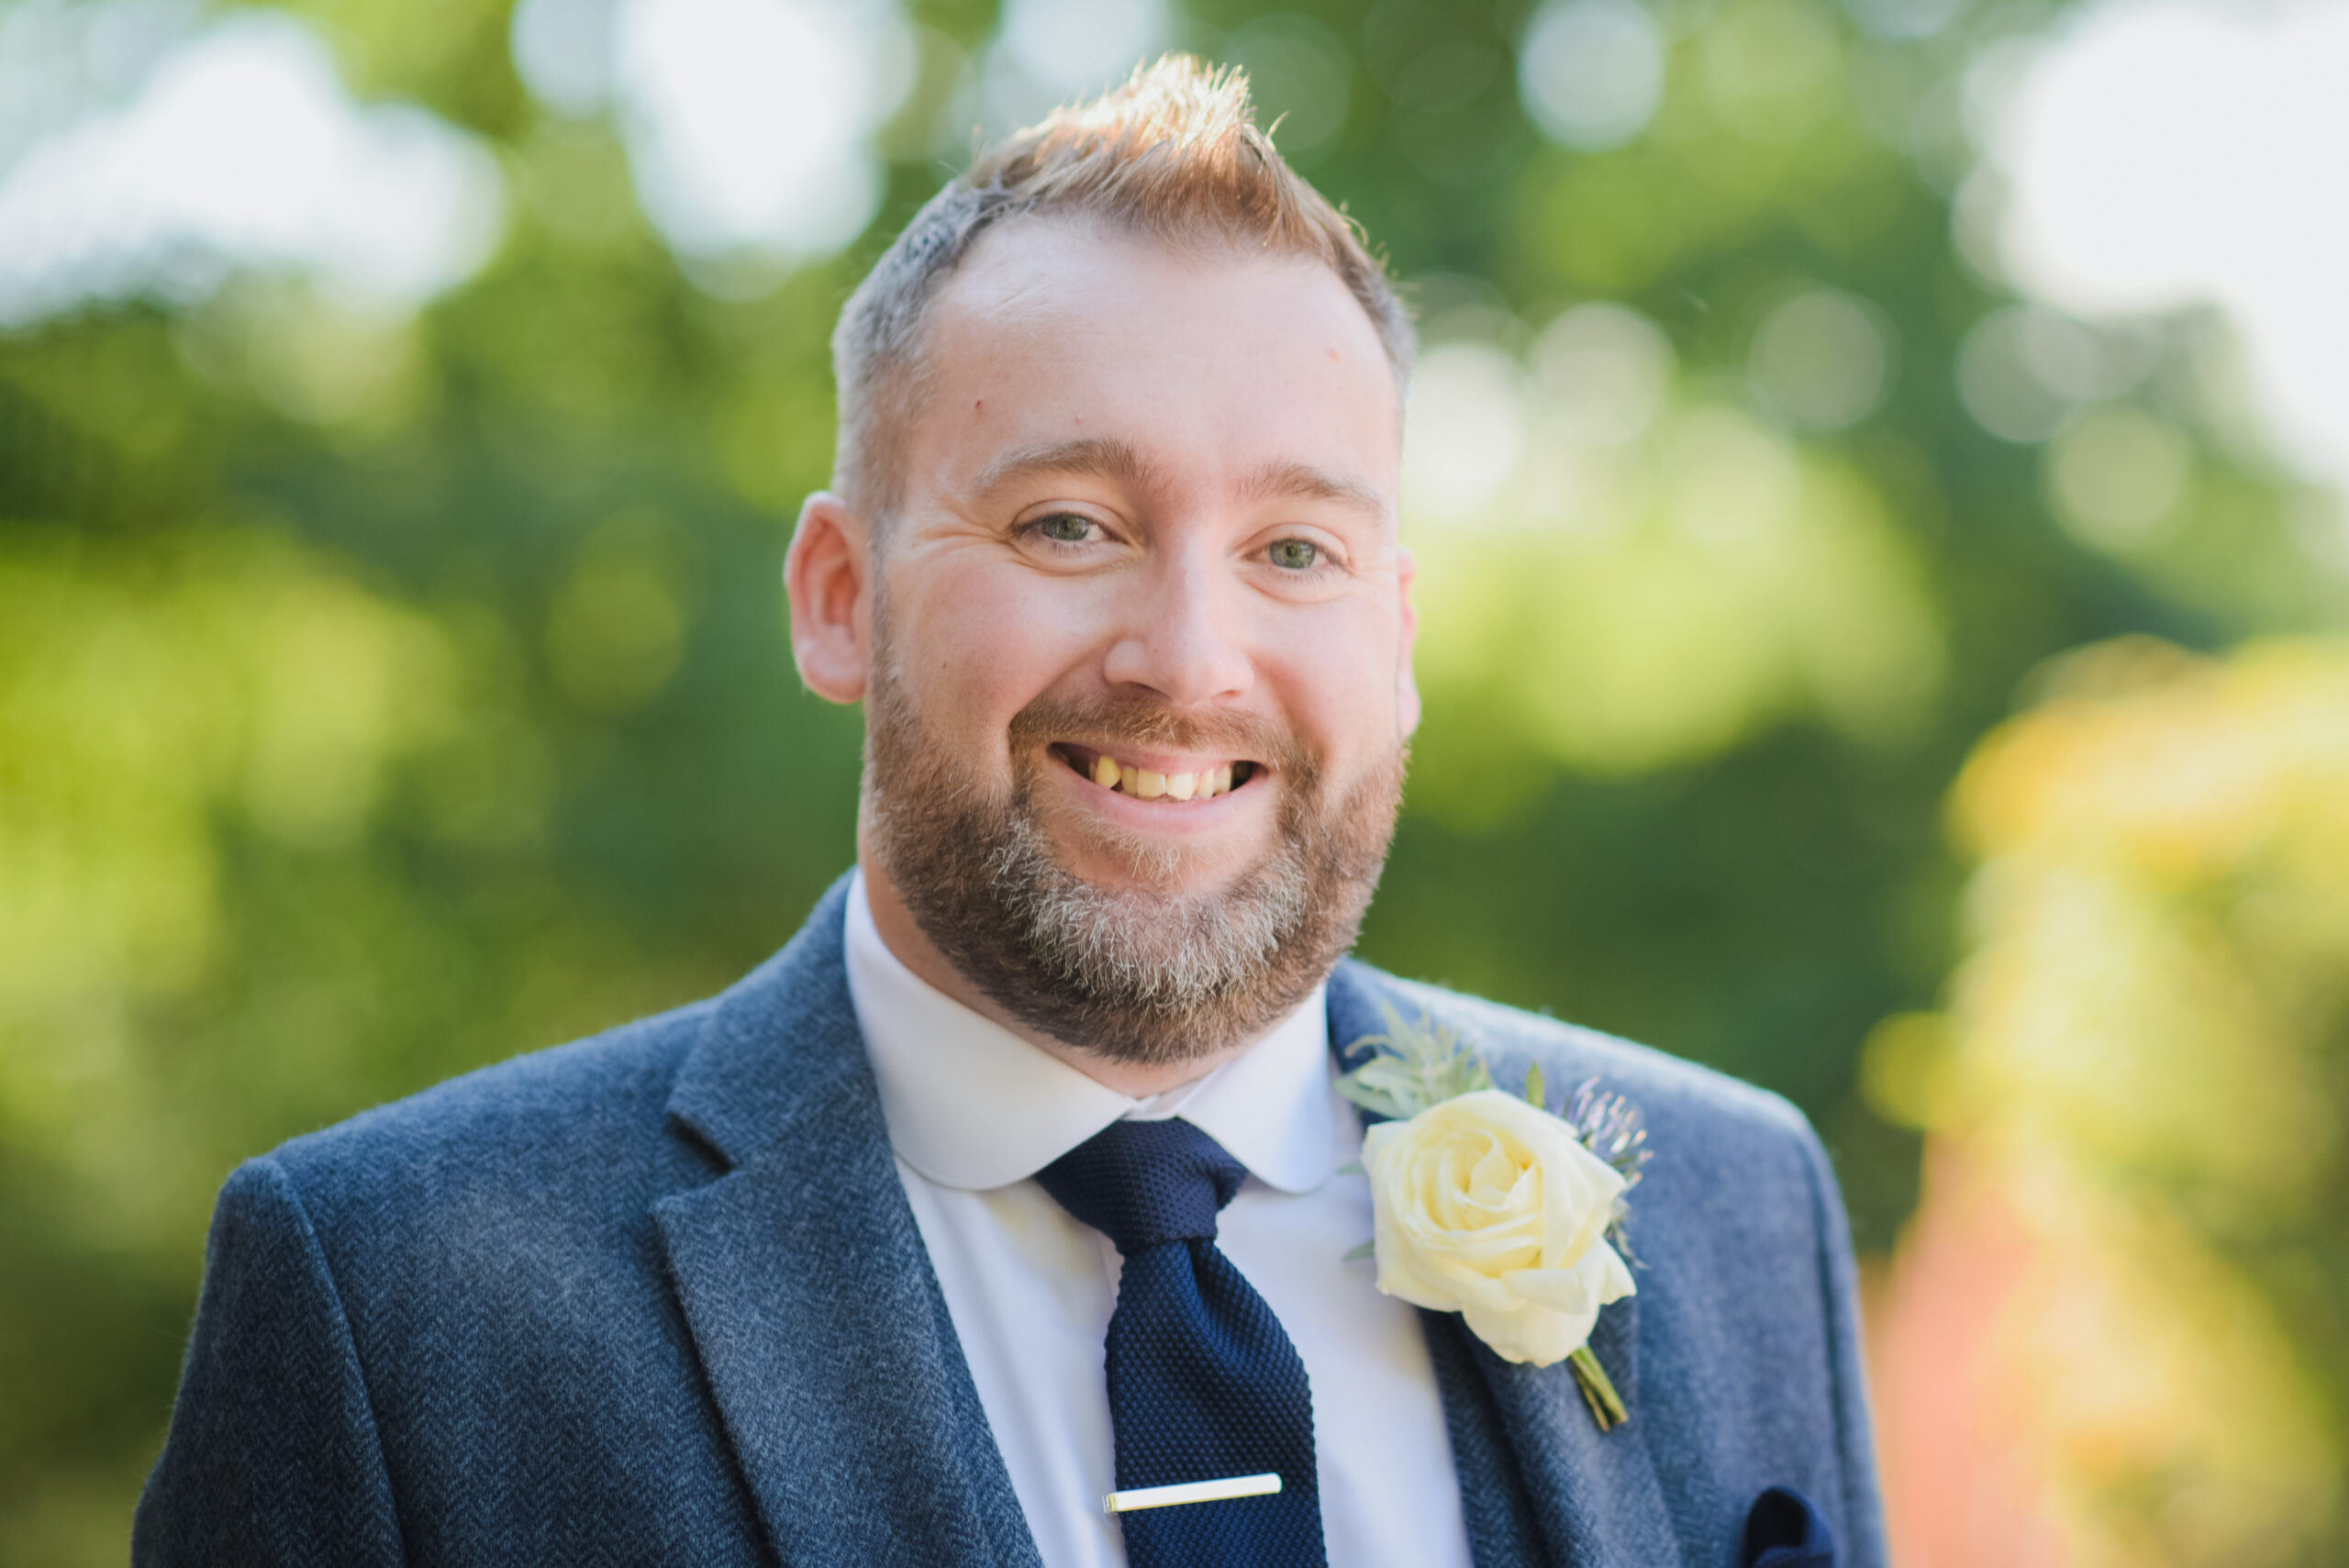 Beth & Richards Wedding Photography at Wootton Park